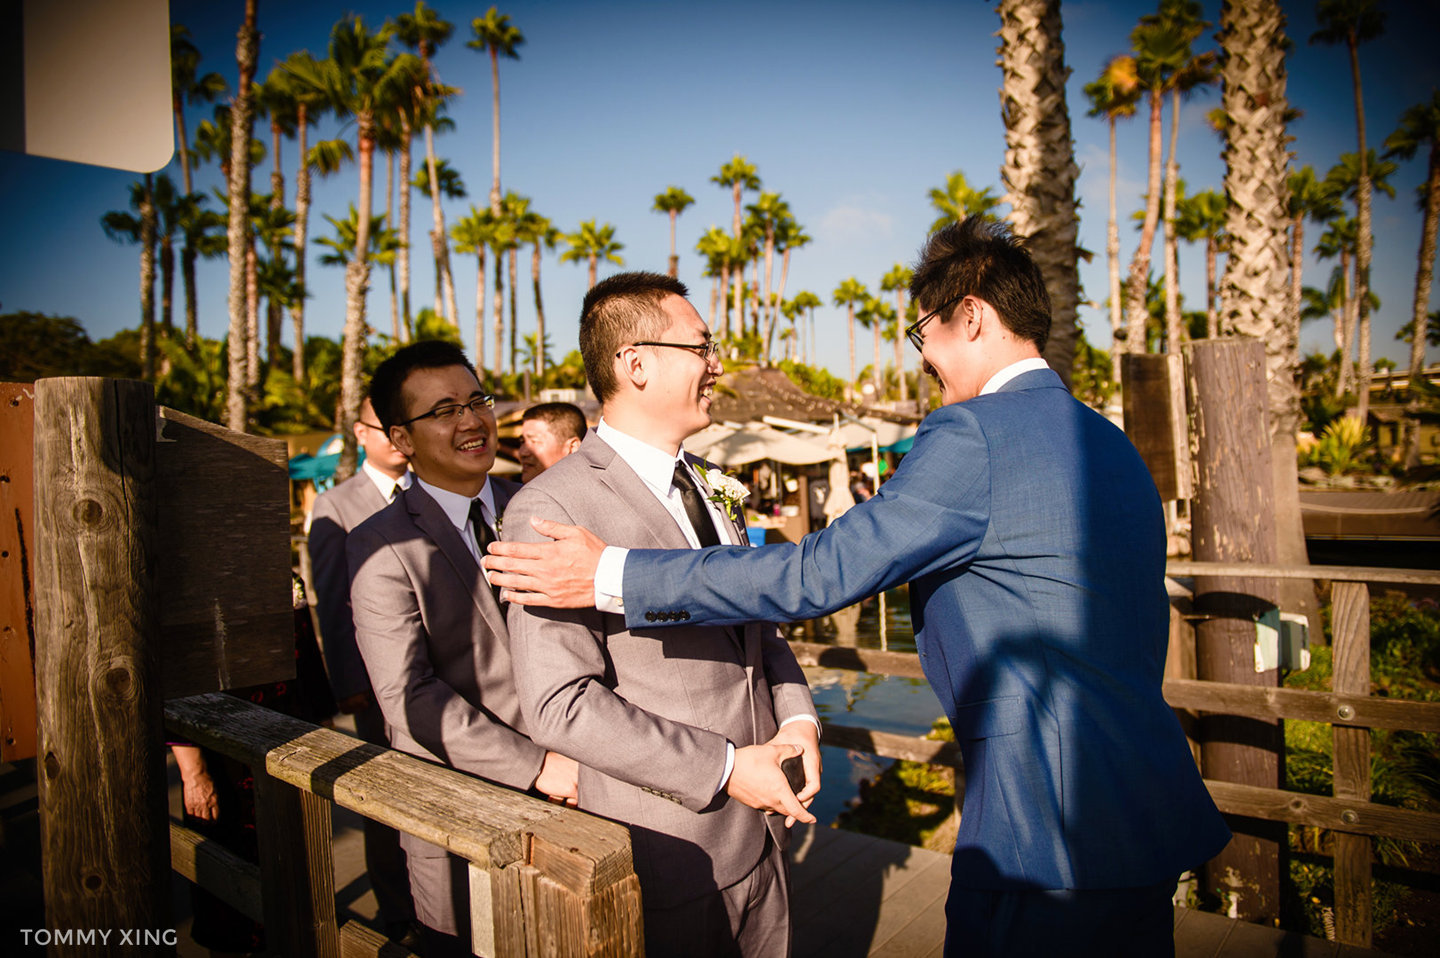 Paradise Point Resort Wedding Xiaolu & Bin San Diego 圣地亚哥婚礼摄影跟拍 Tommy Xing Photography 洛杉矶婚礼婚纱照摄影师 084.jpg